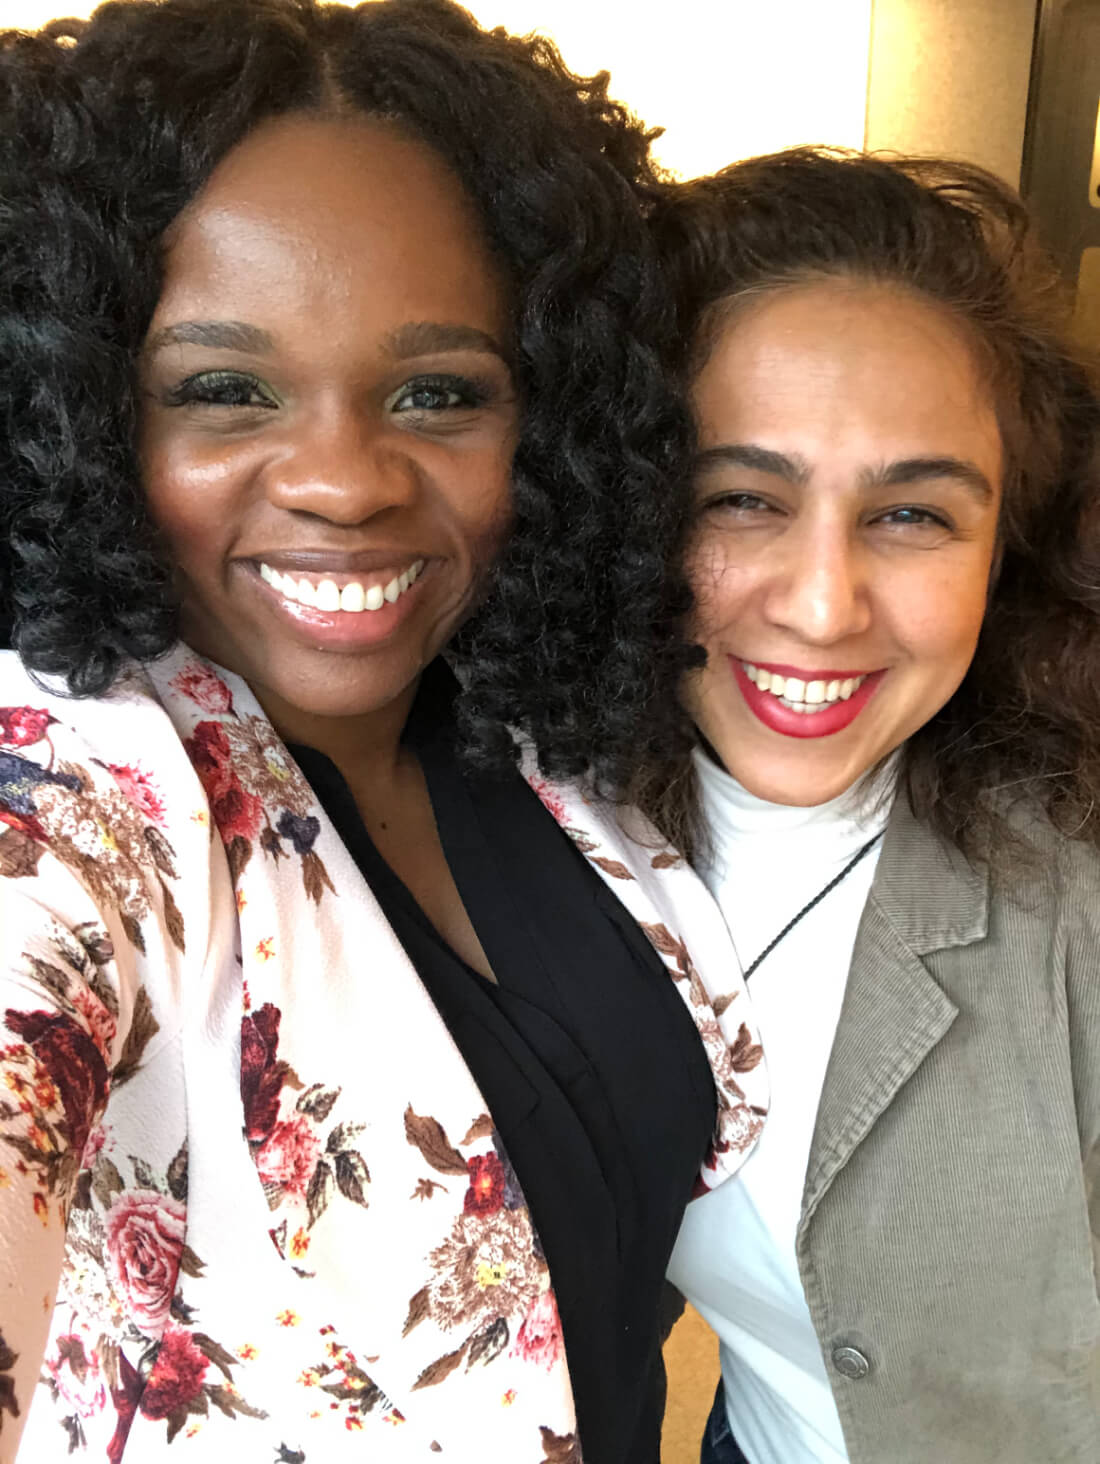 Local Purse founders Lola Akinmade Åkerström and Sara Mansouri taking a selfie